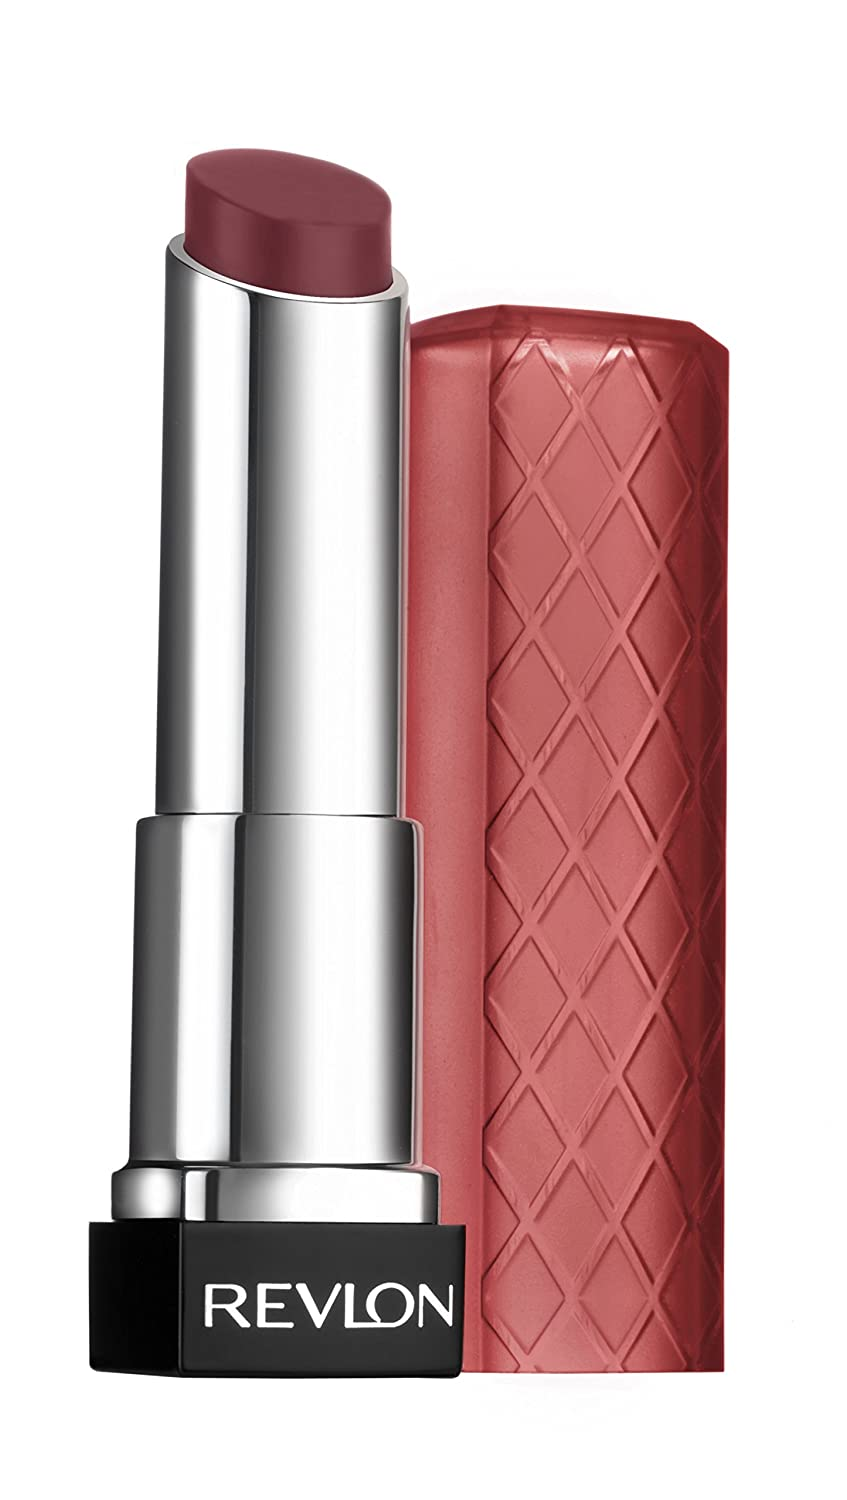 REVLON Colorburst Lip Butter - Pink Truffle 7206269001